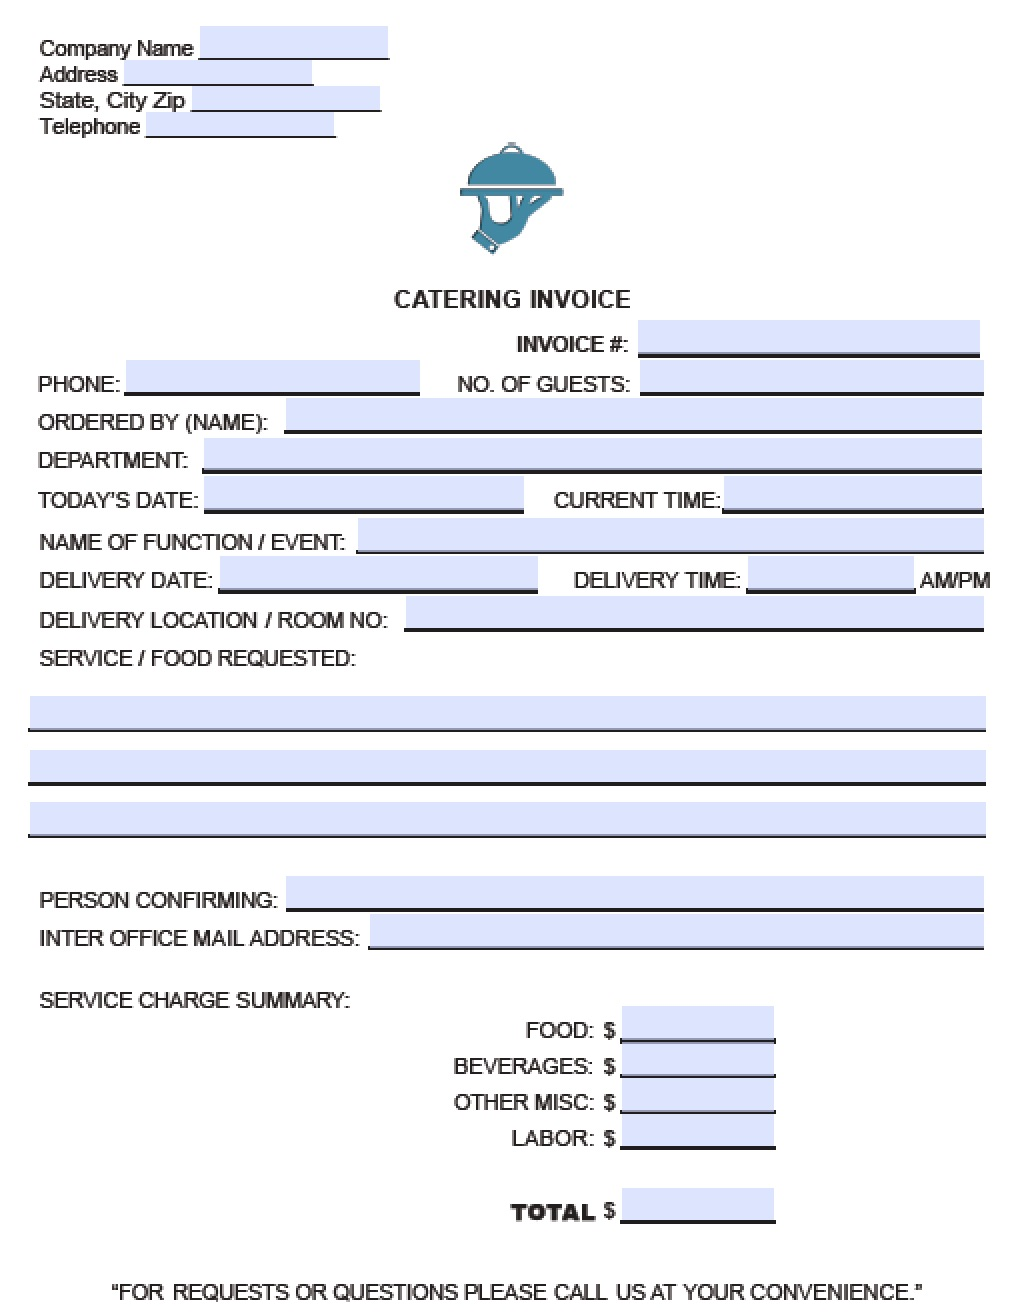 catering invoice sample   Physic.minimalistics.co